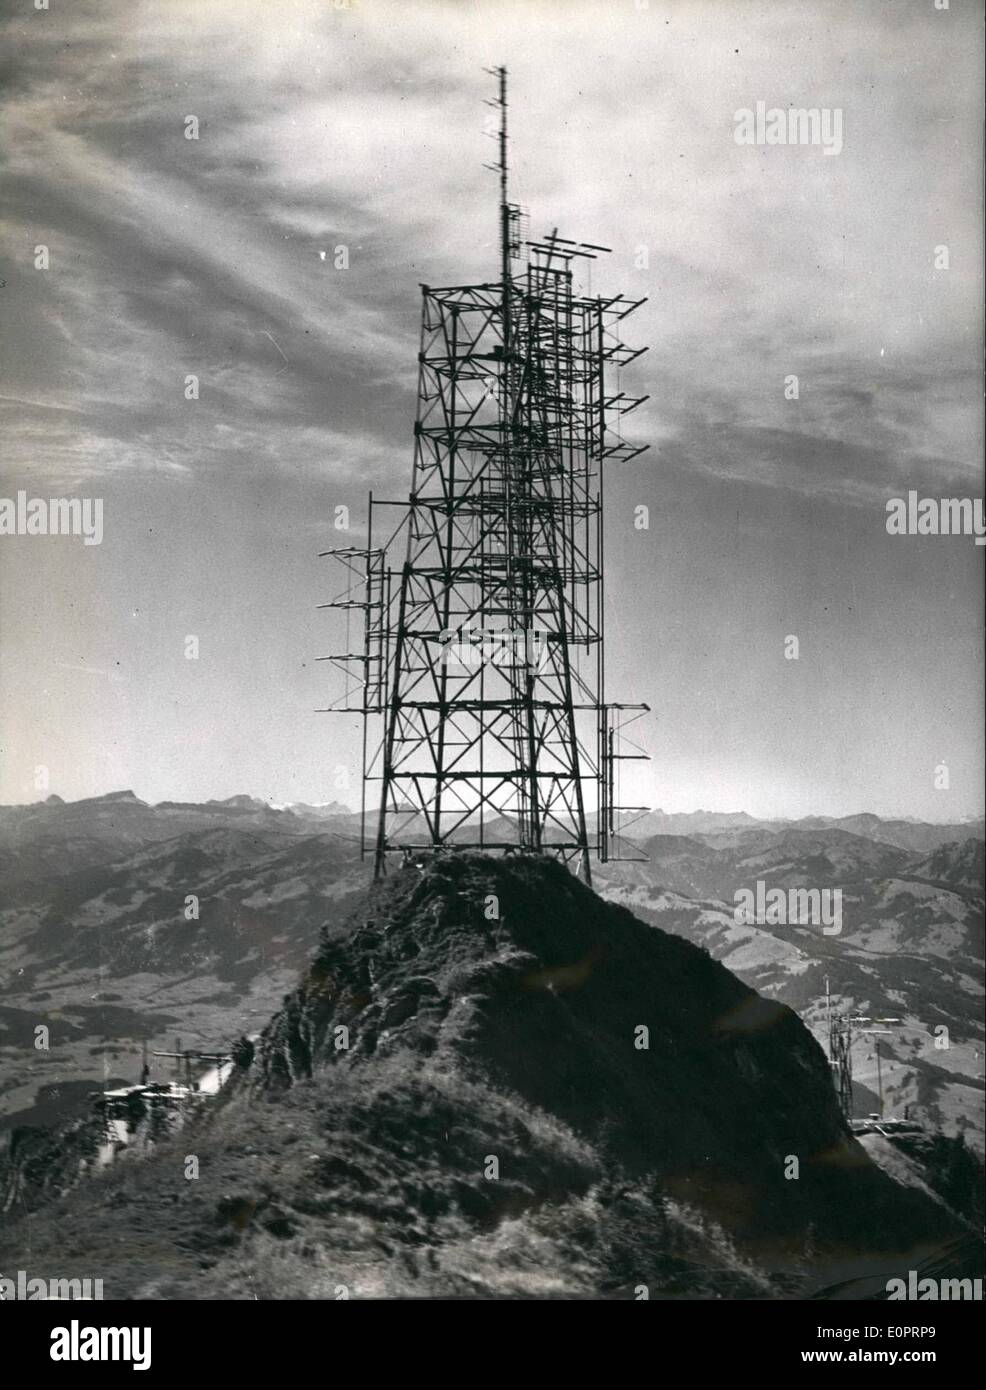 Nov. 11, 1956 - Very fine perspective gives a very fine telecast: At the Allgau Alps northeast from Sonthofen (Germany) Stock Photo